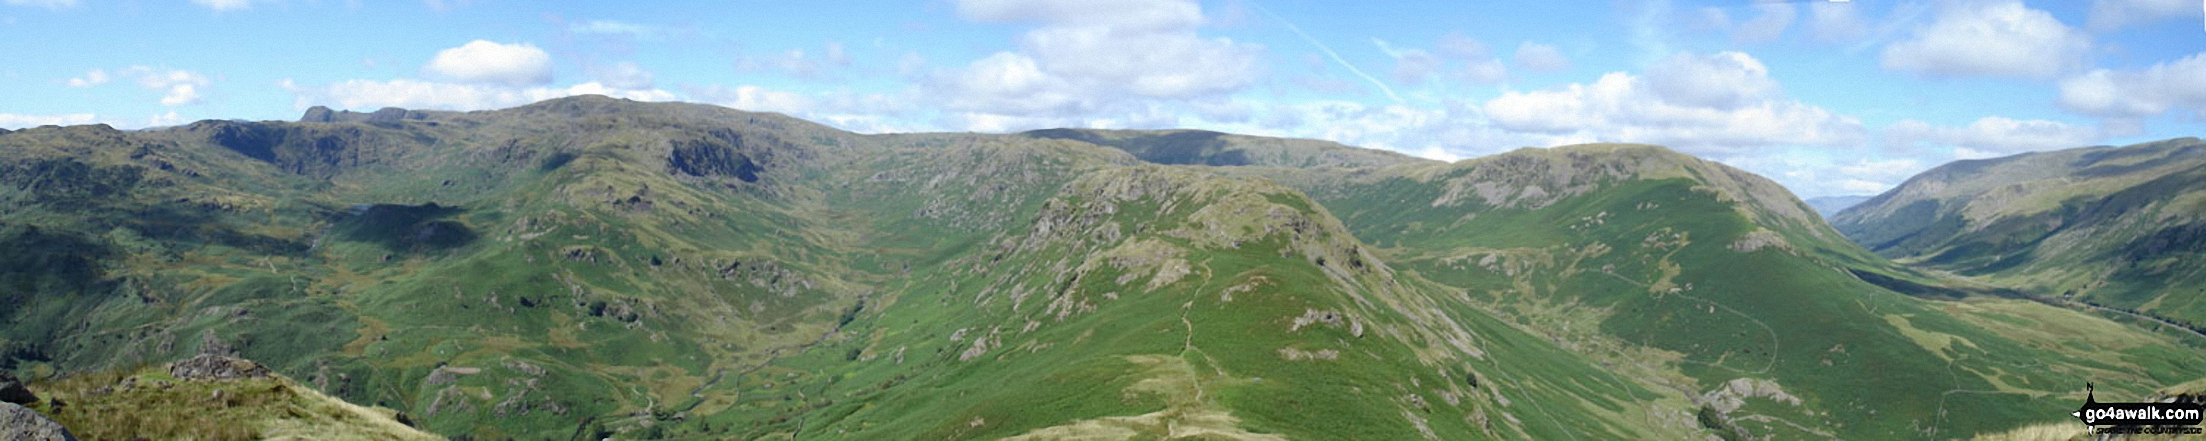 *Grasmere Common, Easedale and The Greenburn Horseshoe from Helm Crag